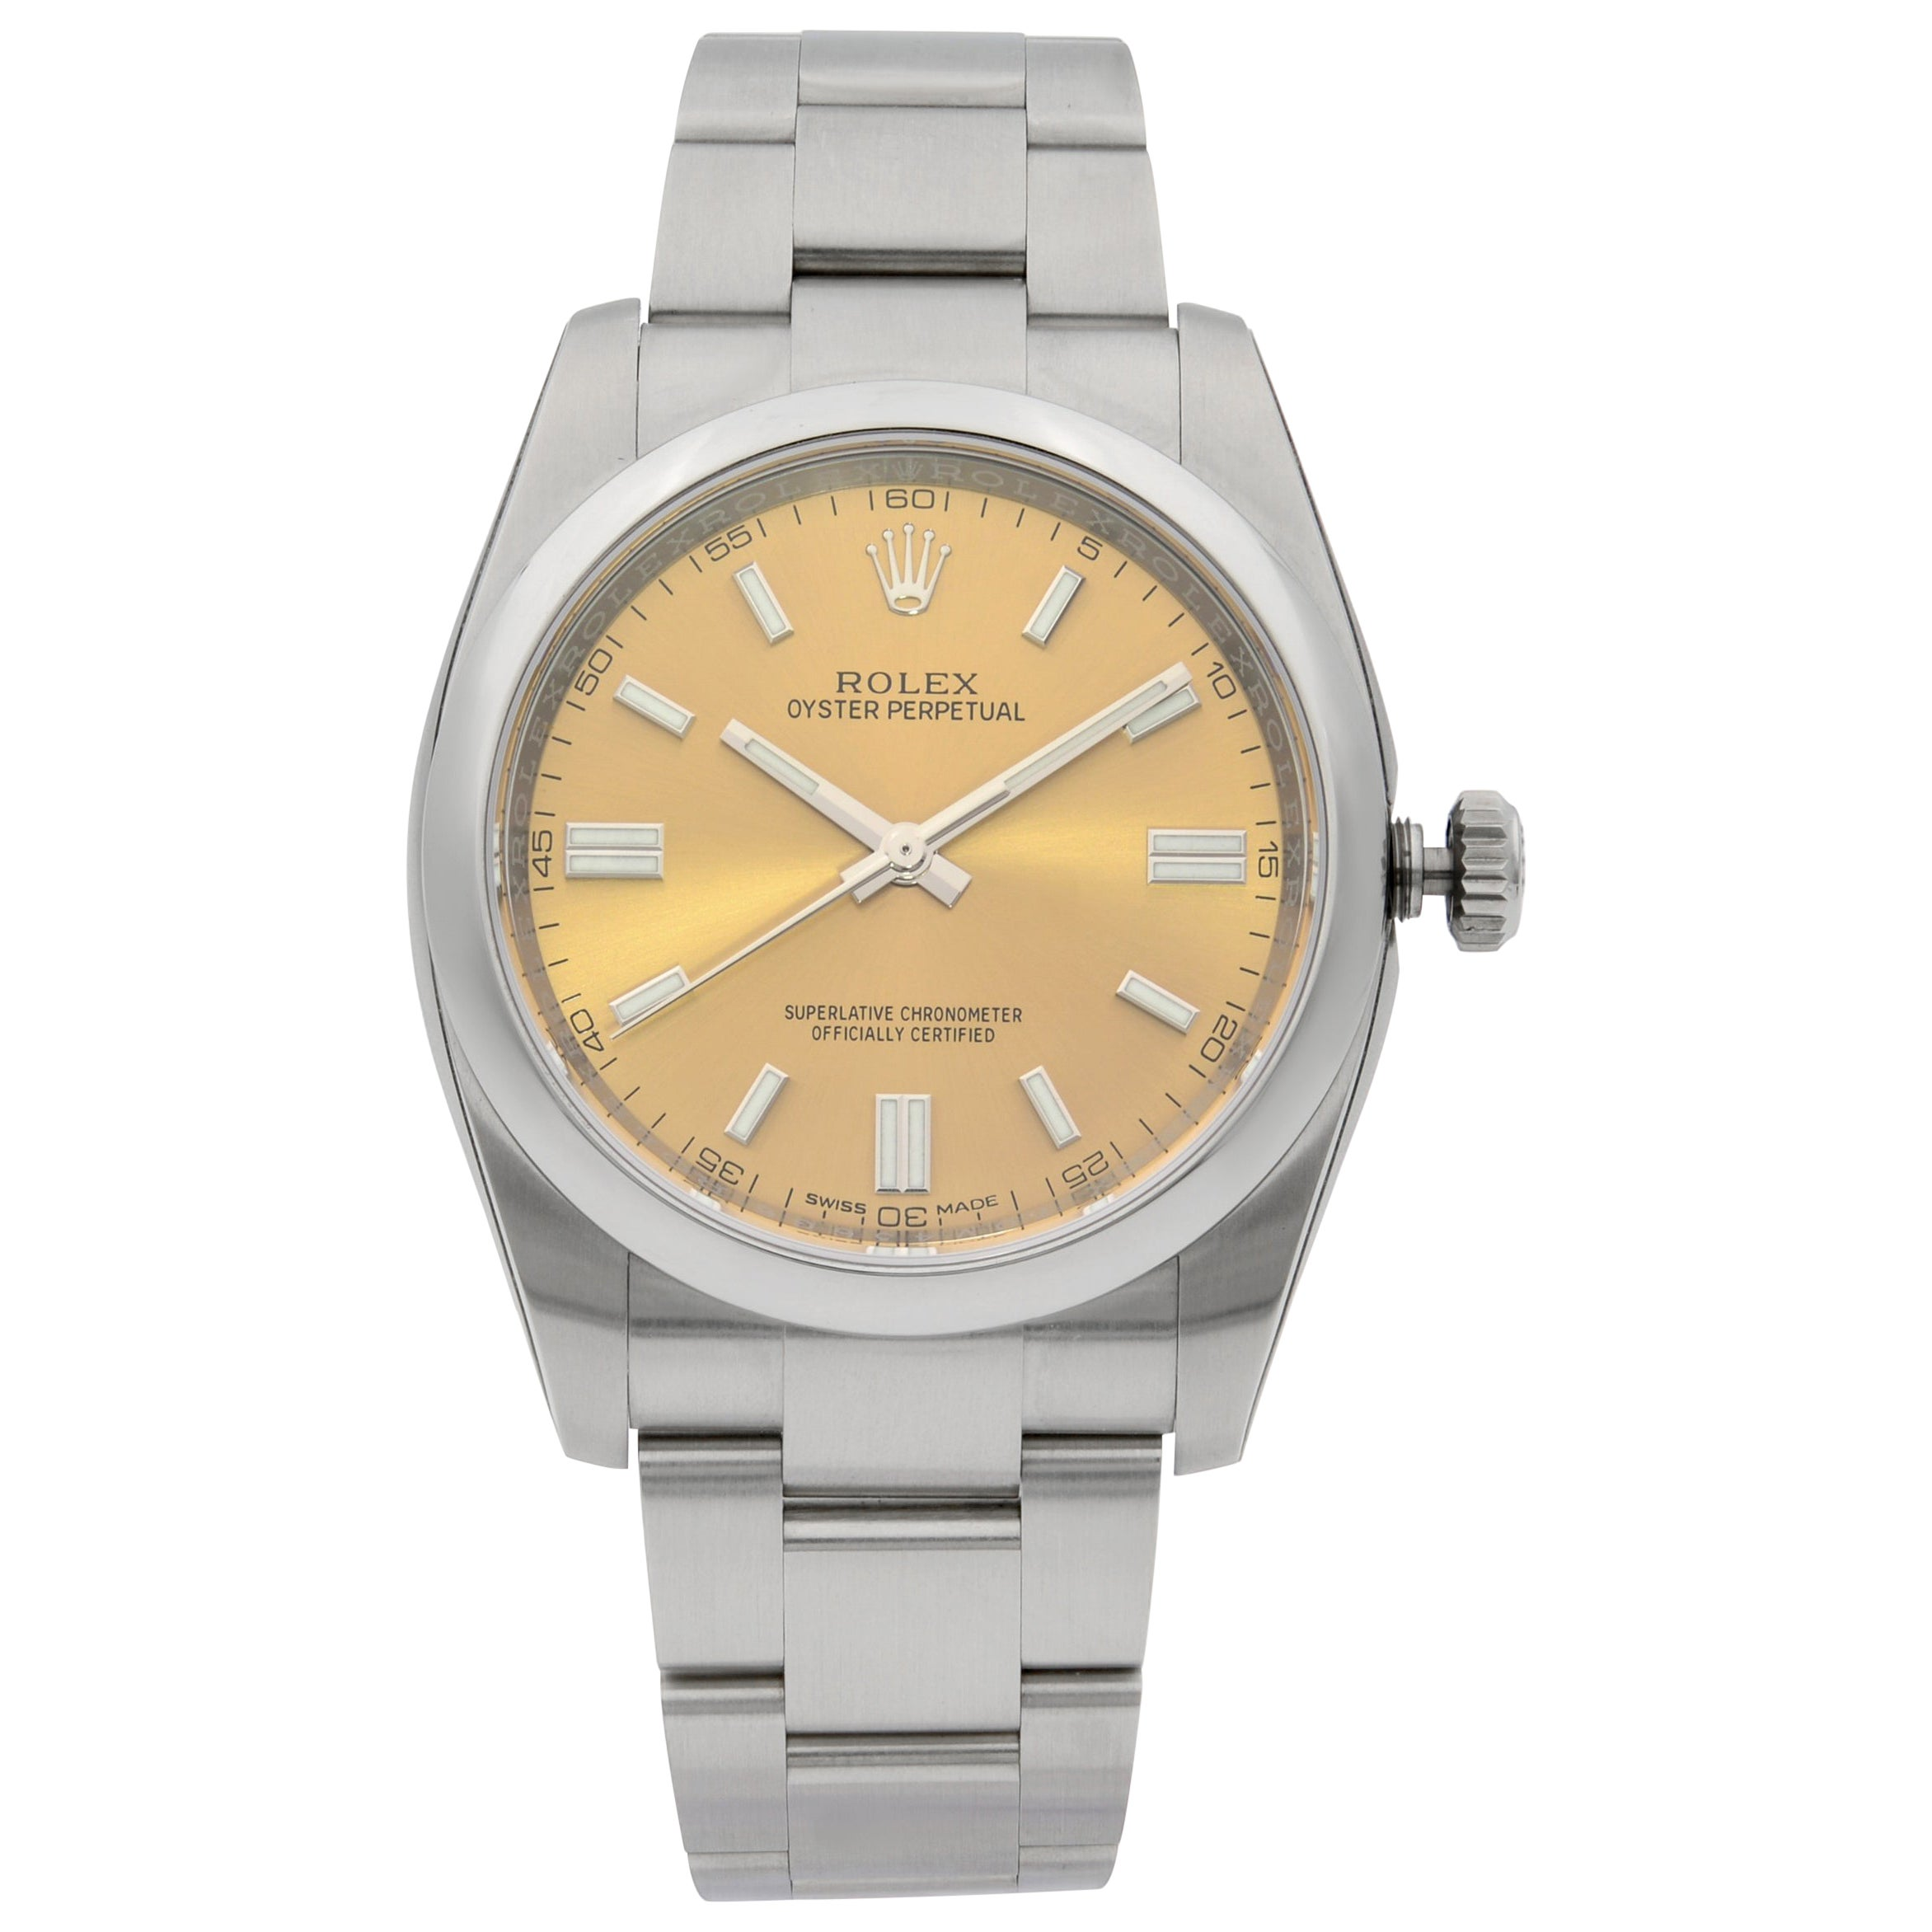 Rolex Oyster Perpetual Steel White Grape Dial Men's Watch 116000WGSO